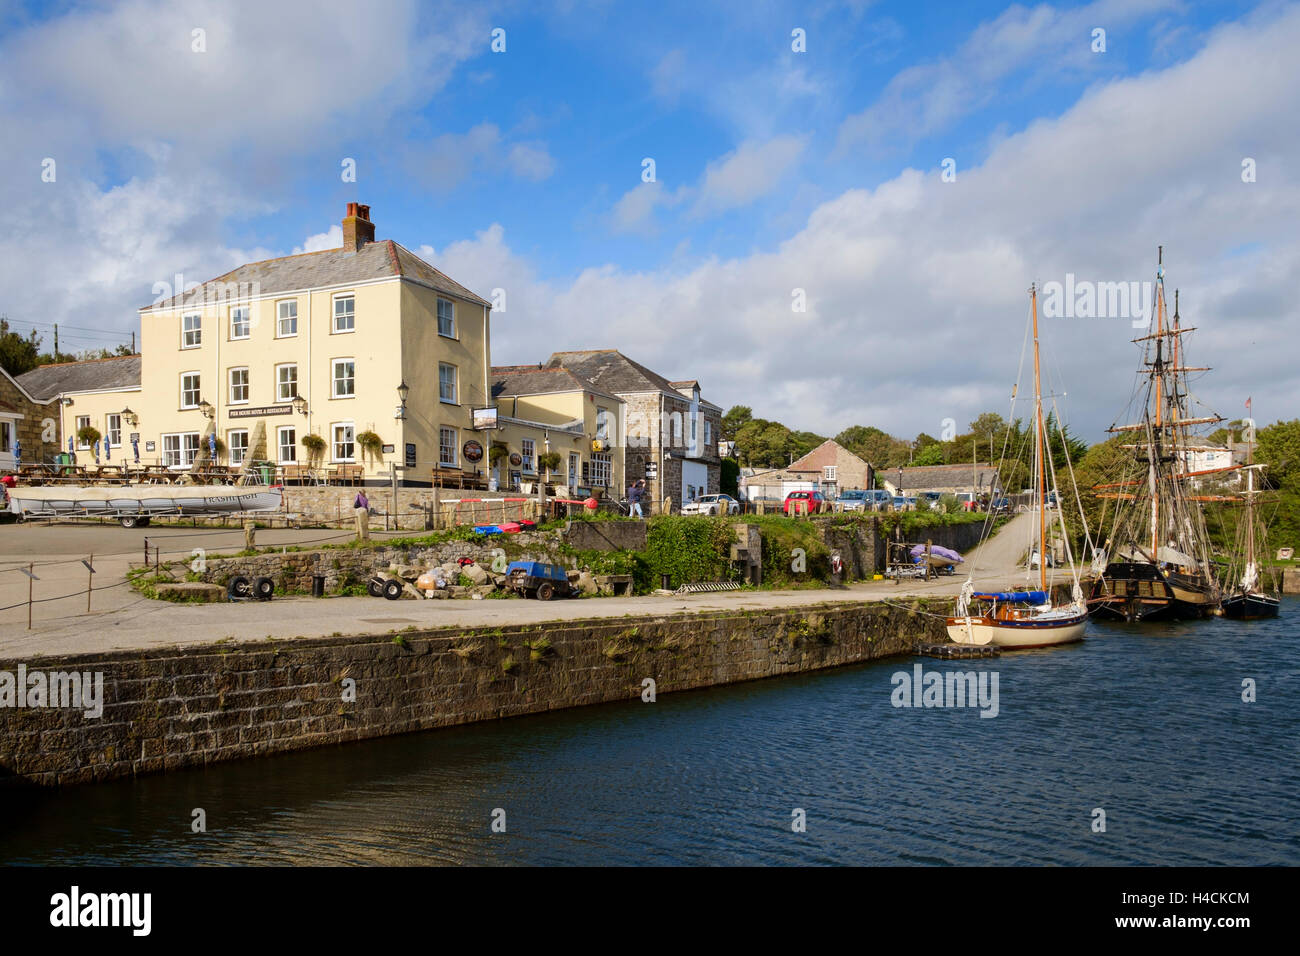 Charlestown harbour, Cornwall, England, UK - Stock Image